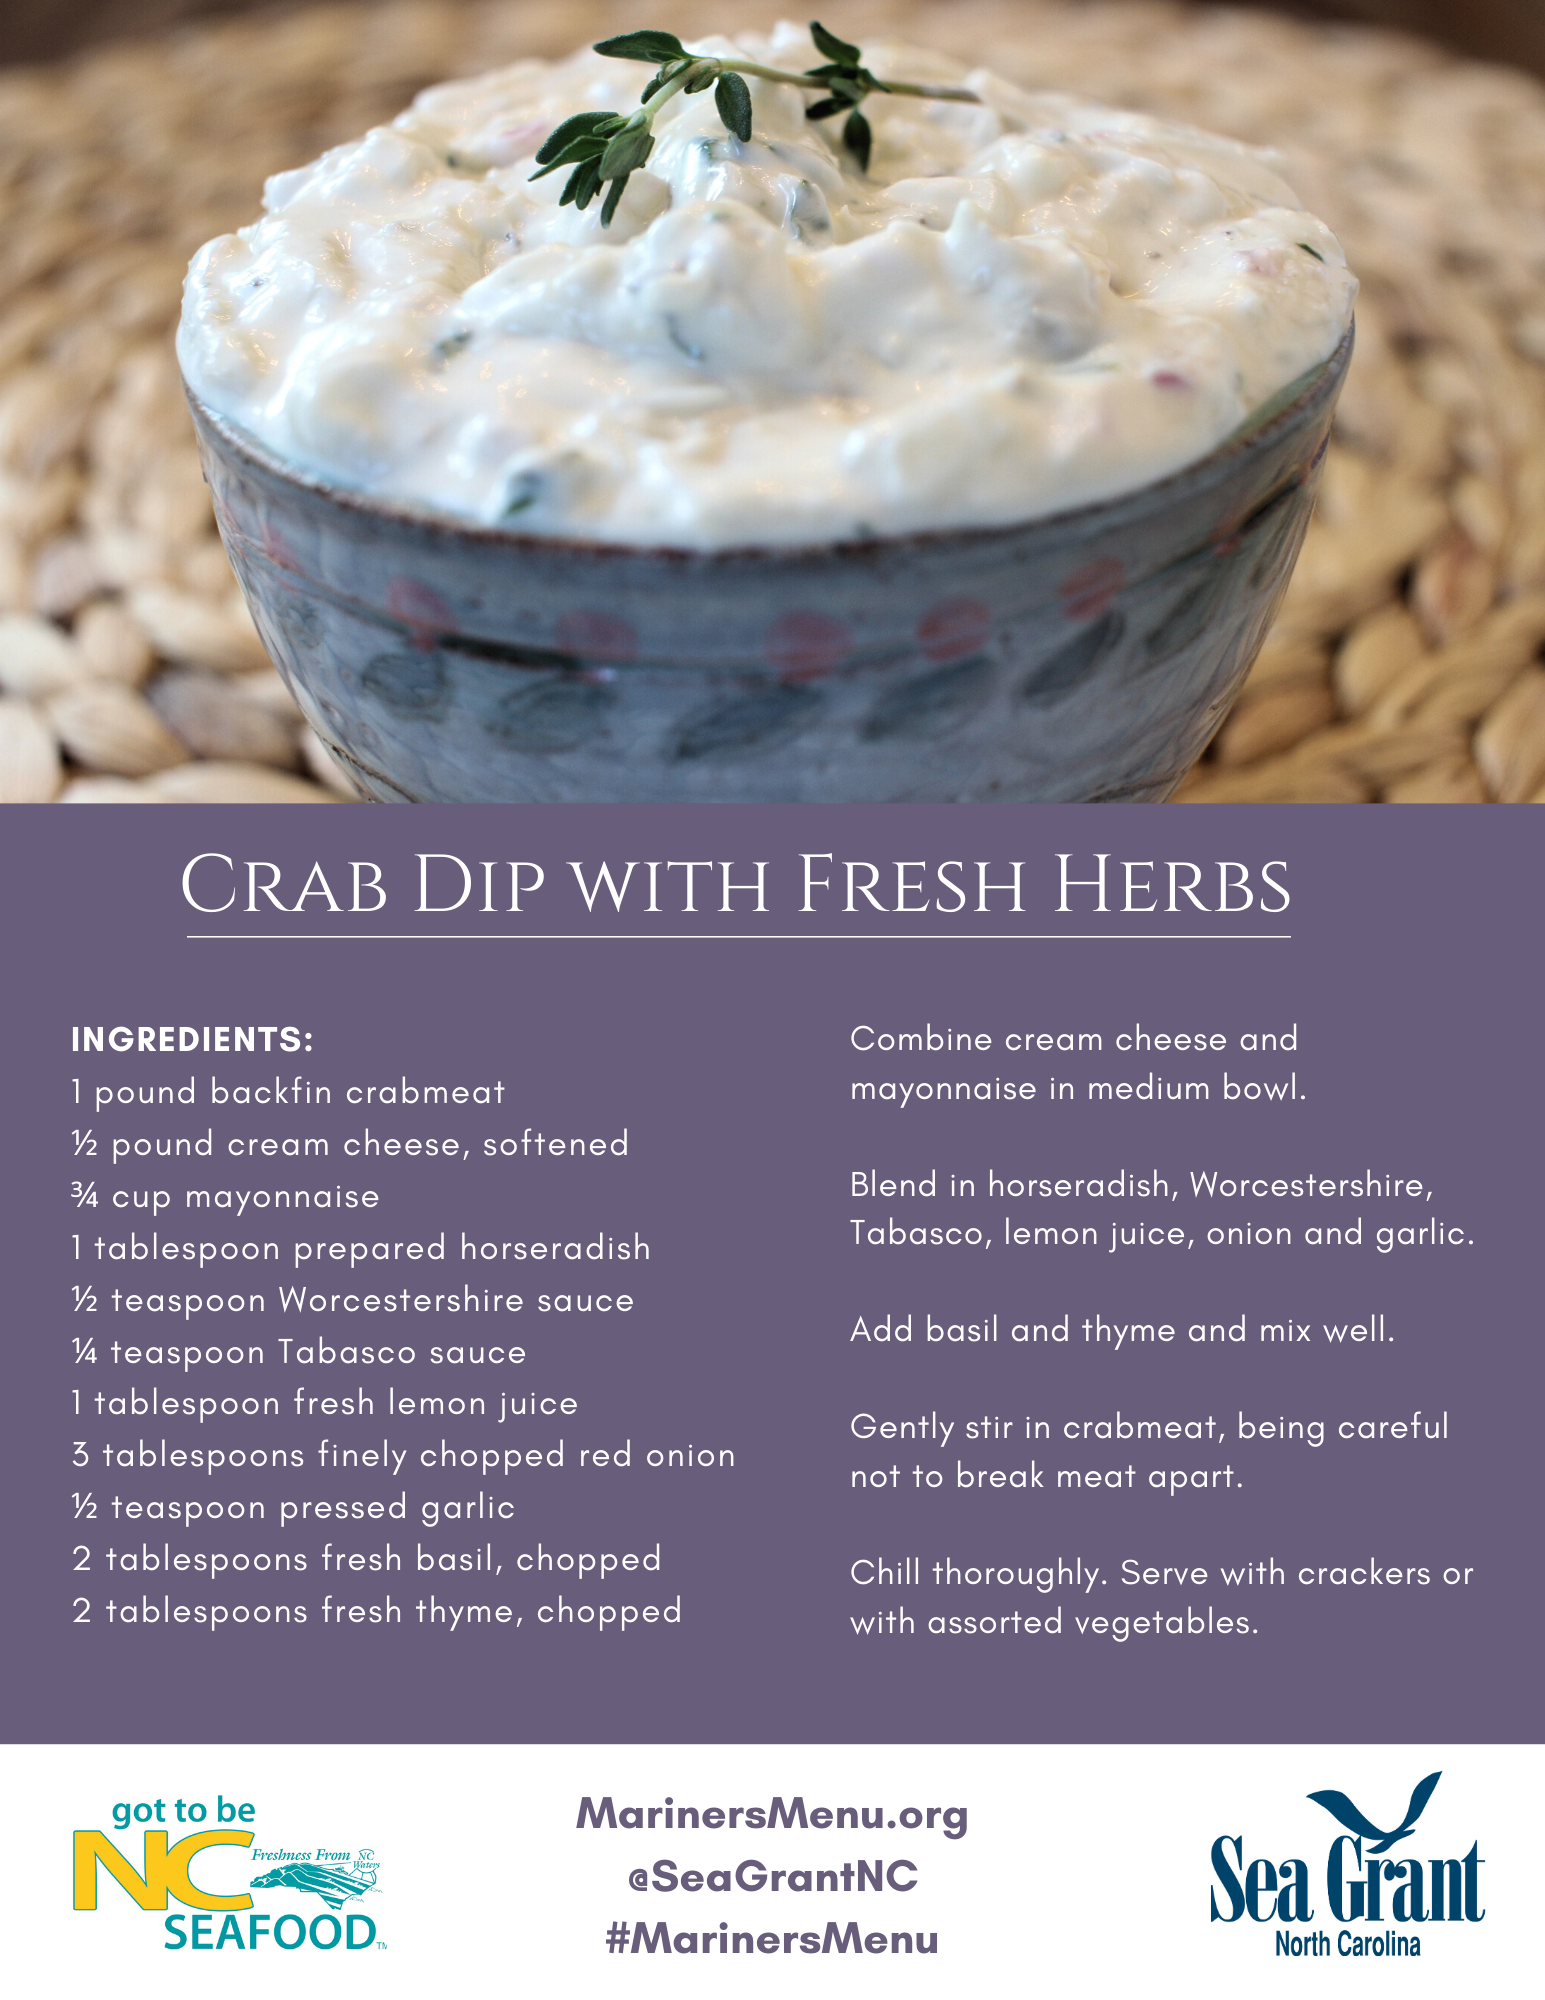 Crab Dip with Fresh Herbs recipe